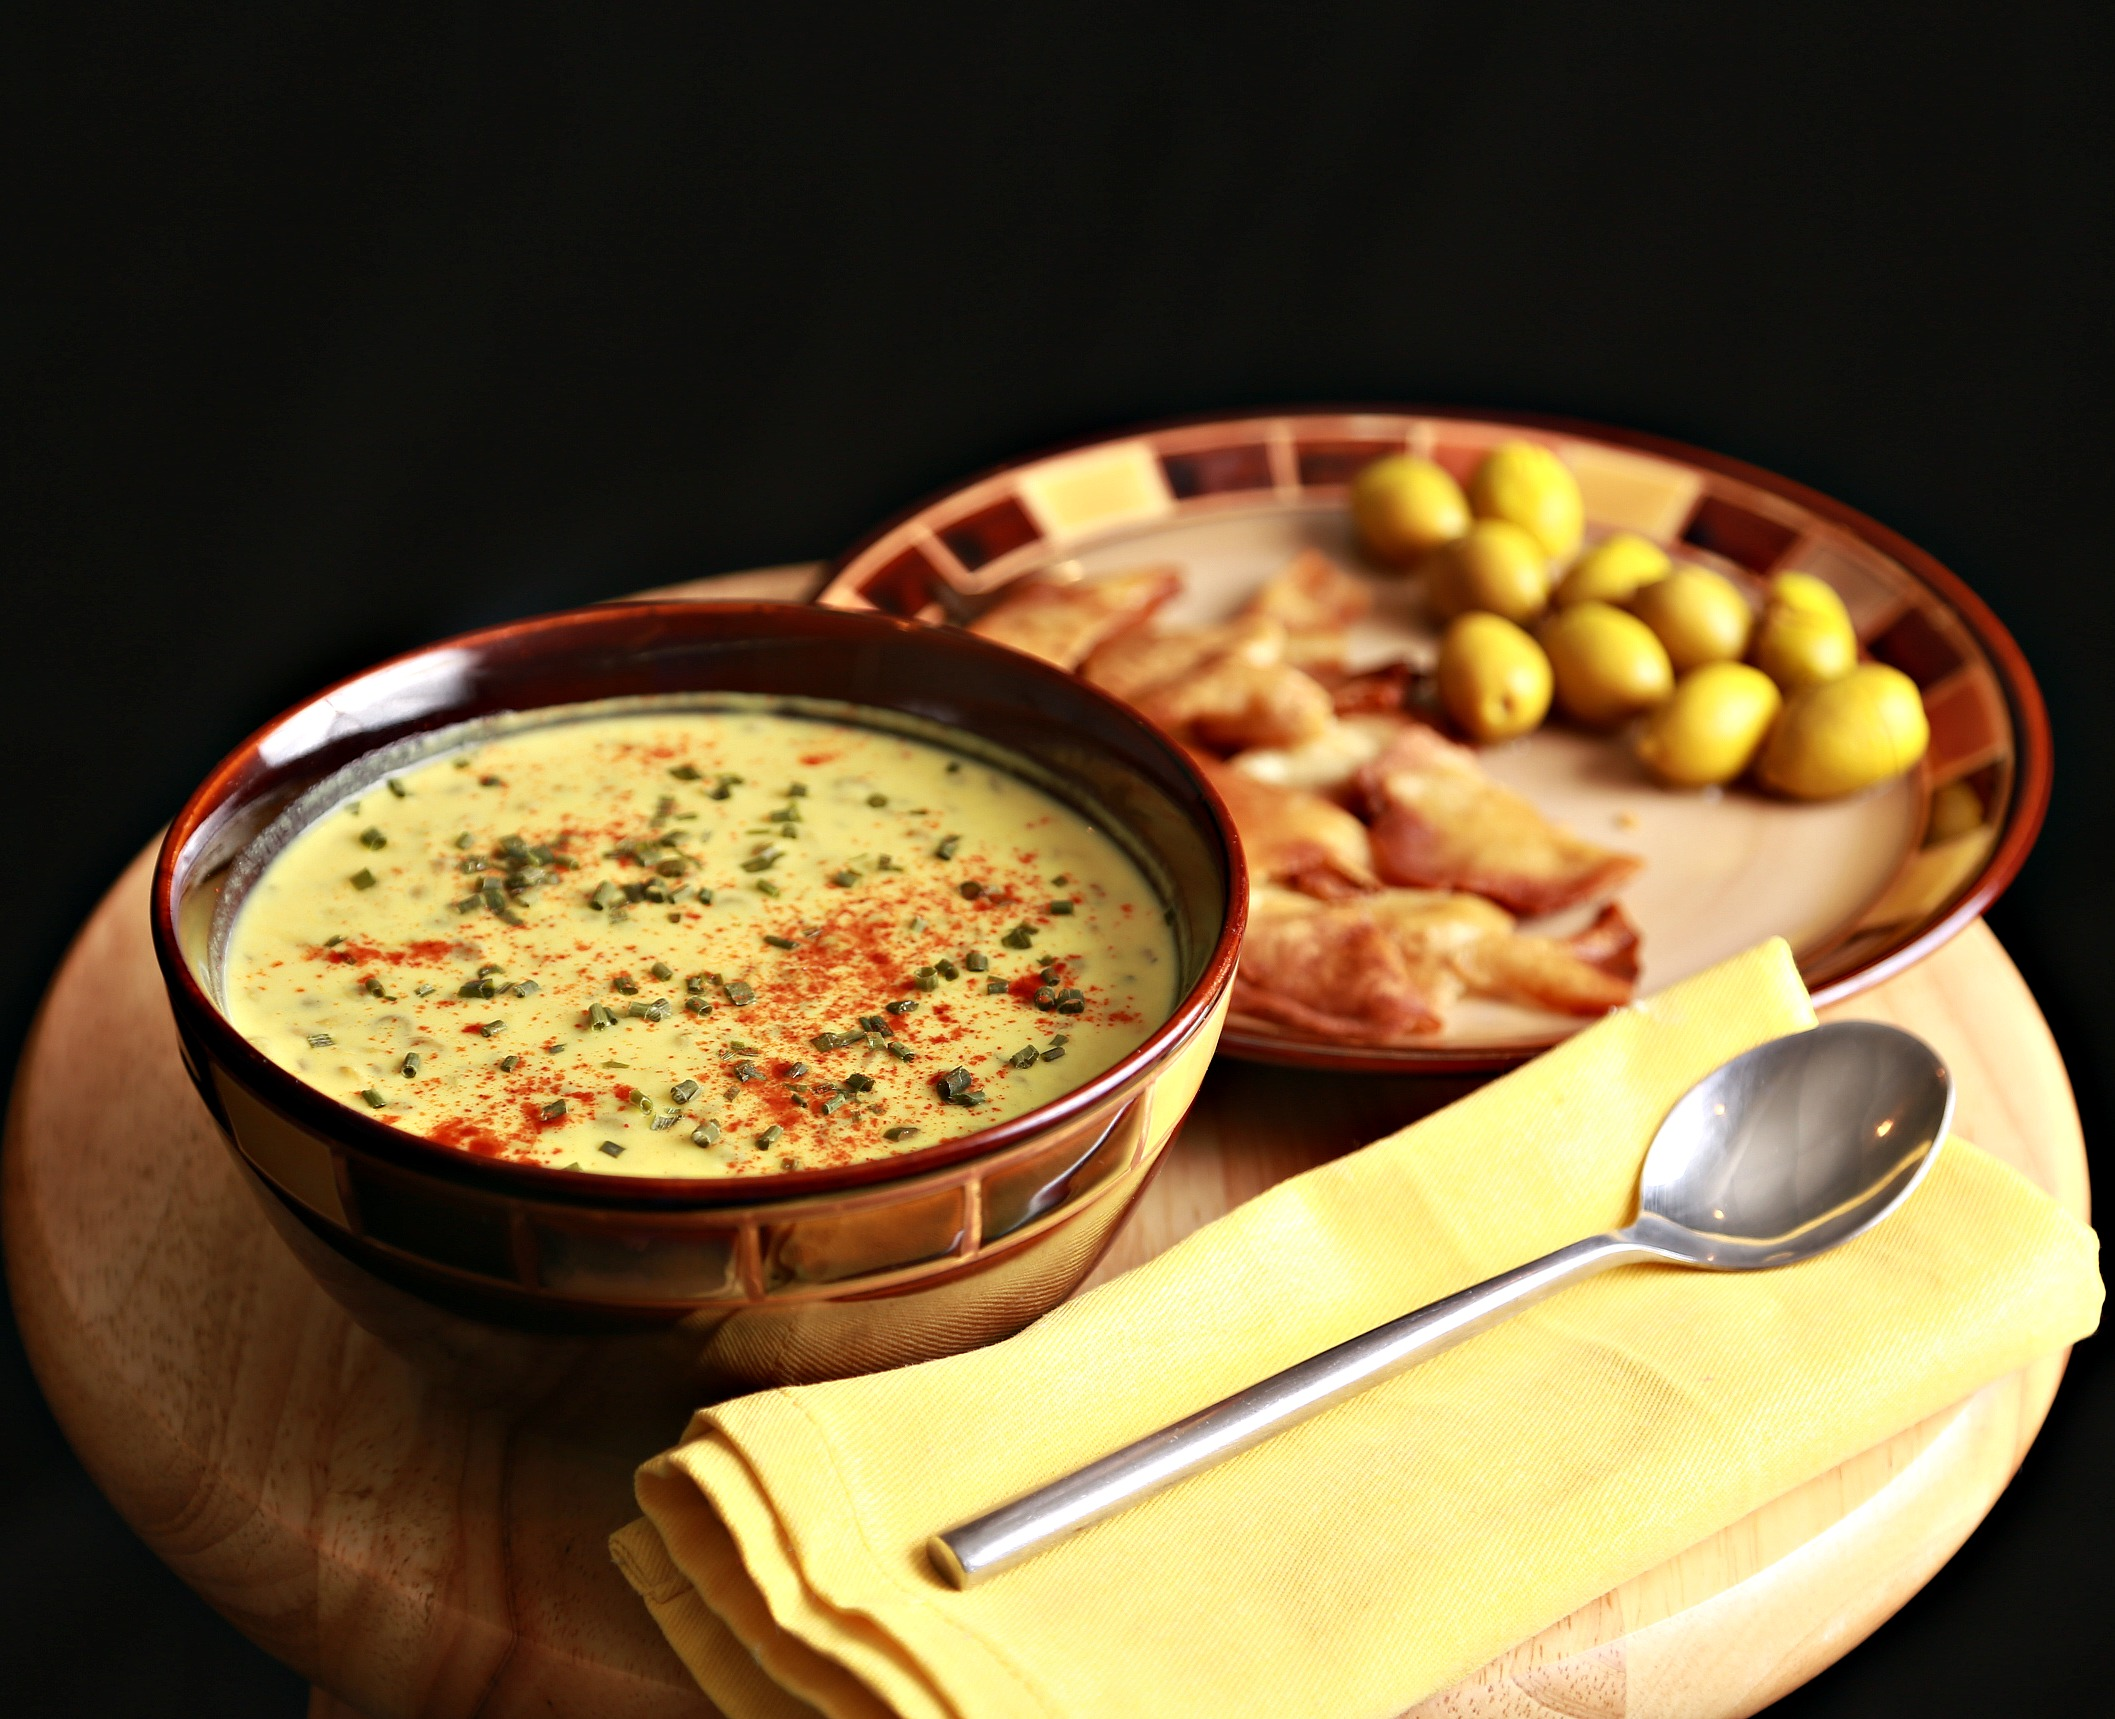 Arabic Yogurt soup with lentils and turmeric